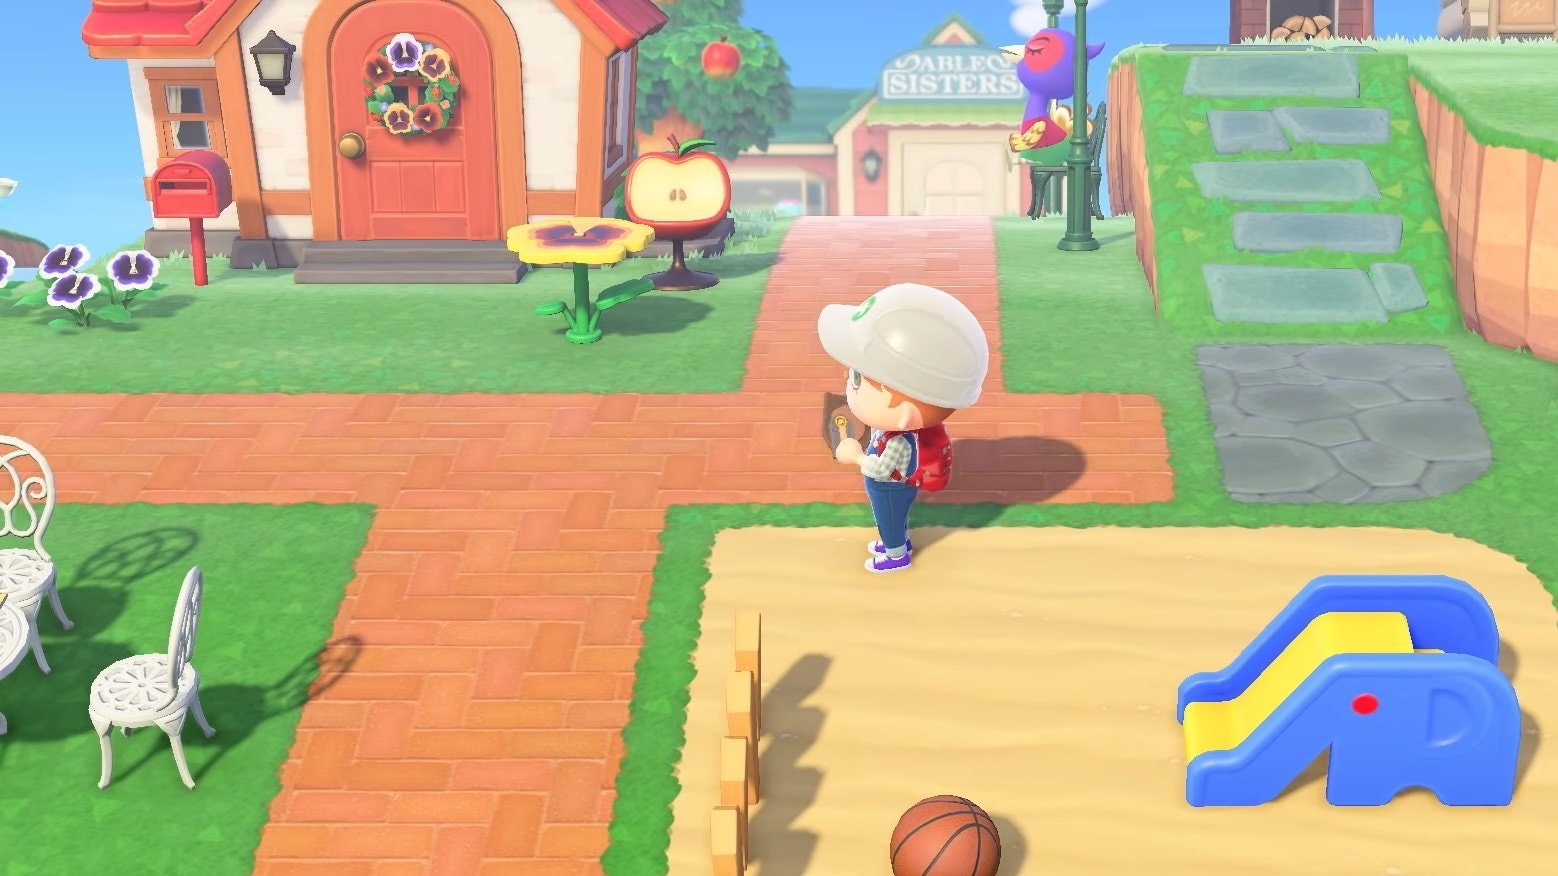 Animal Crossing New Horizons Designs 10 Qr Codes For Stone Paths And More